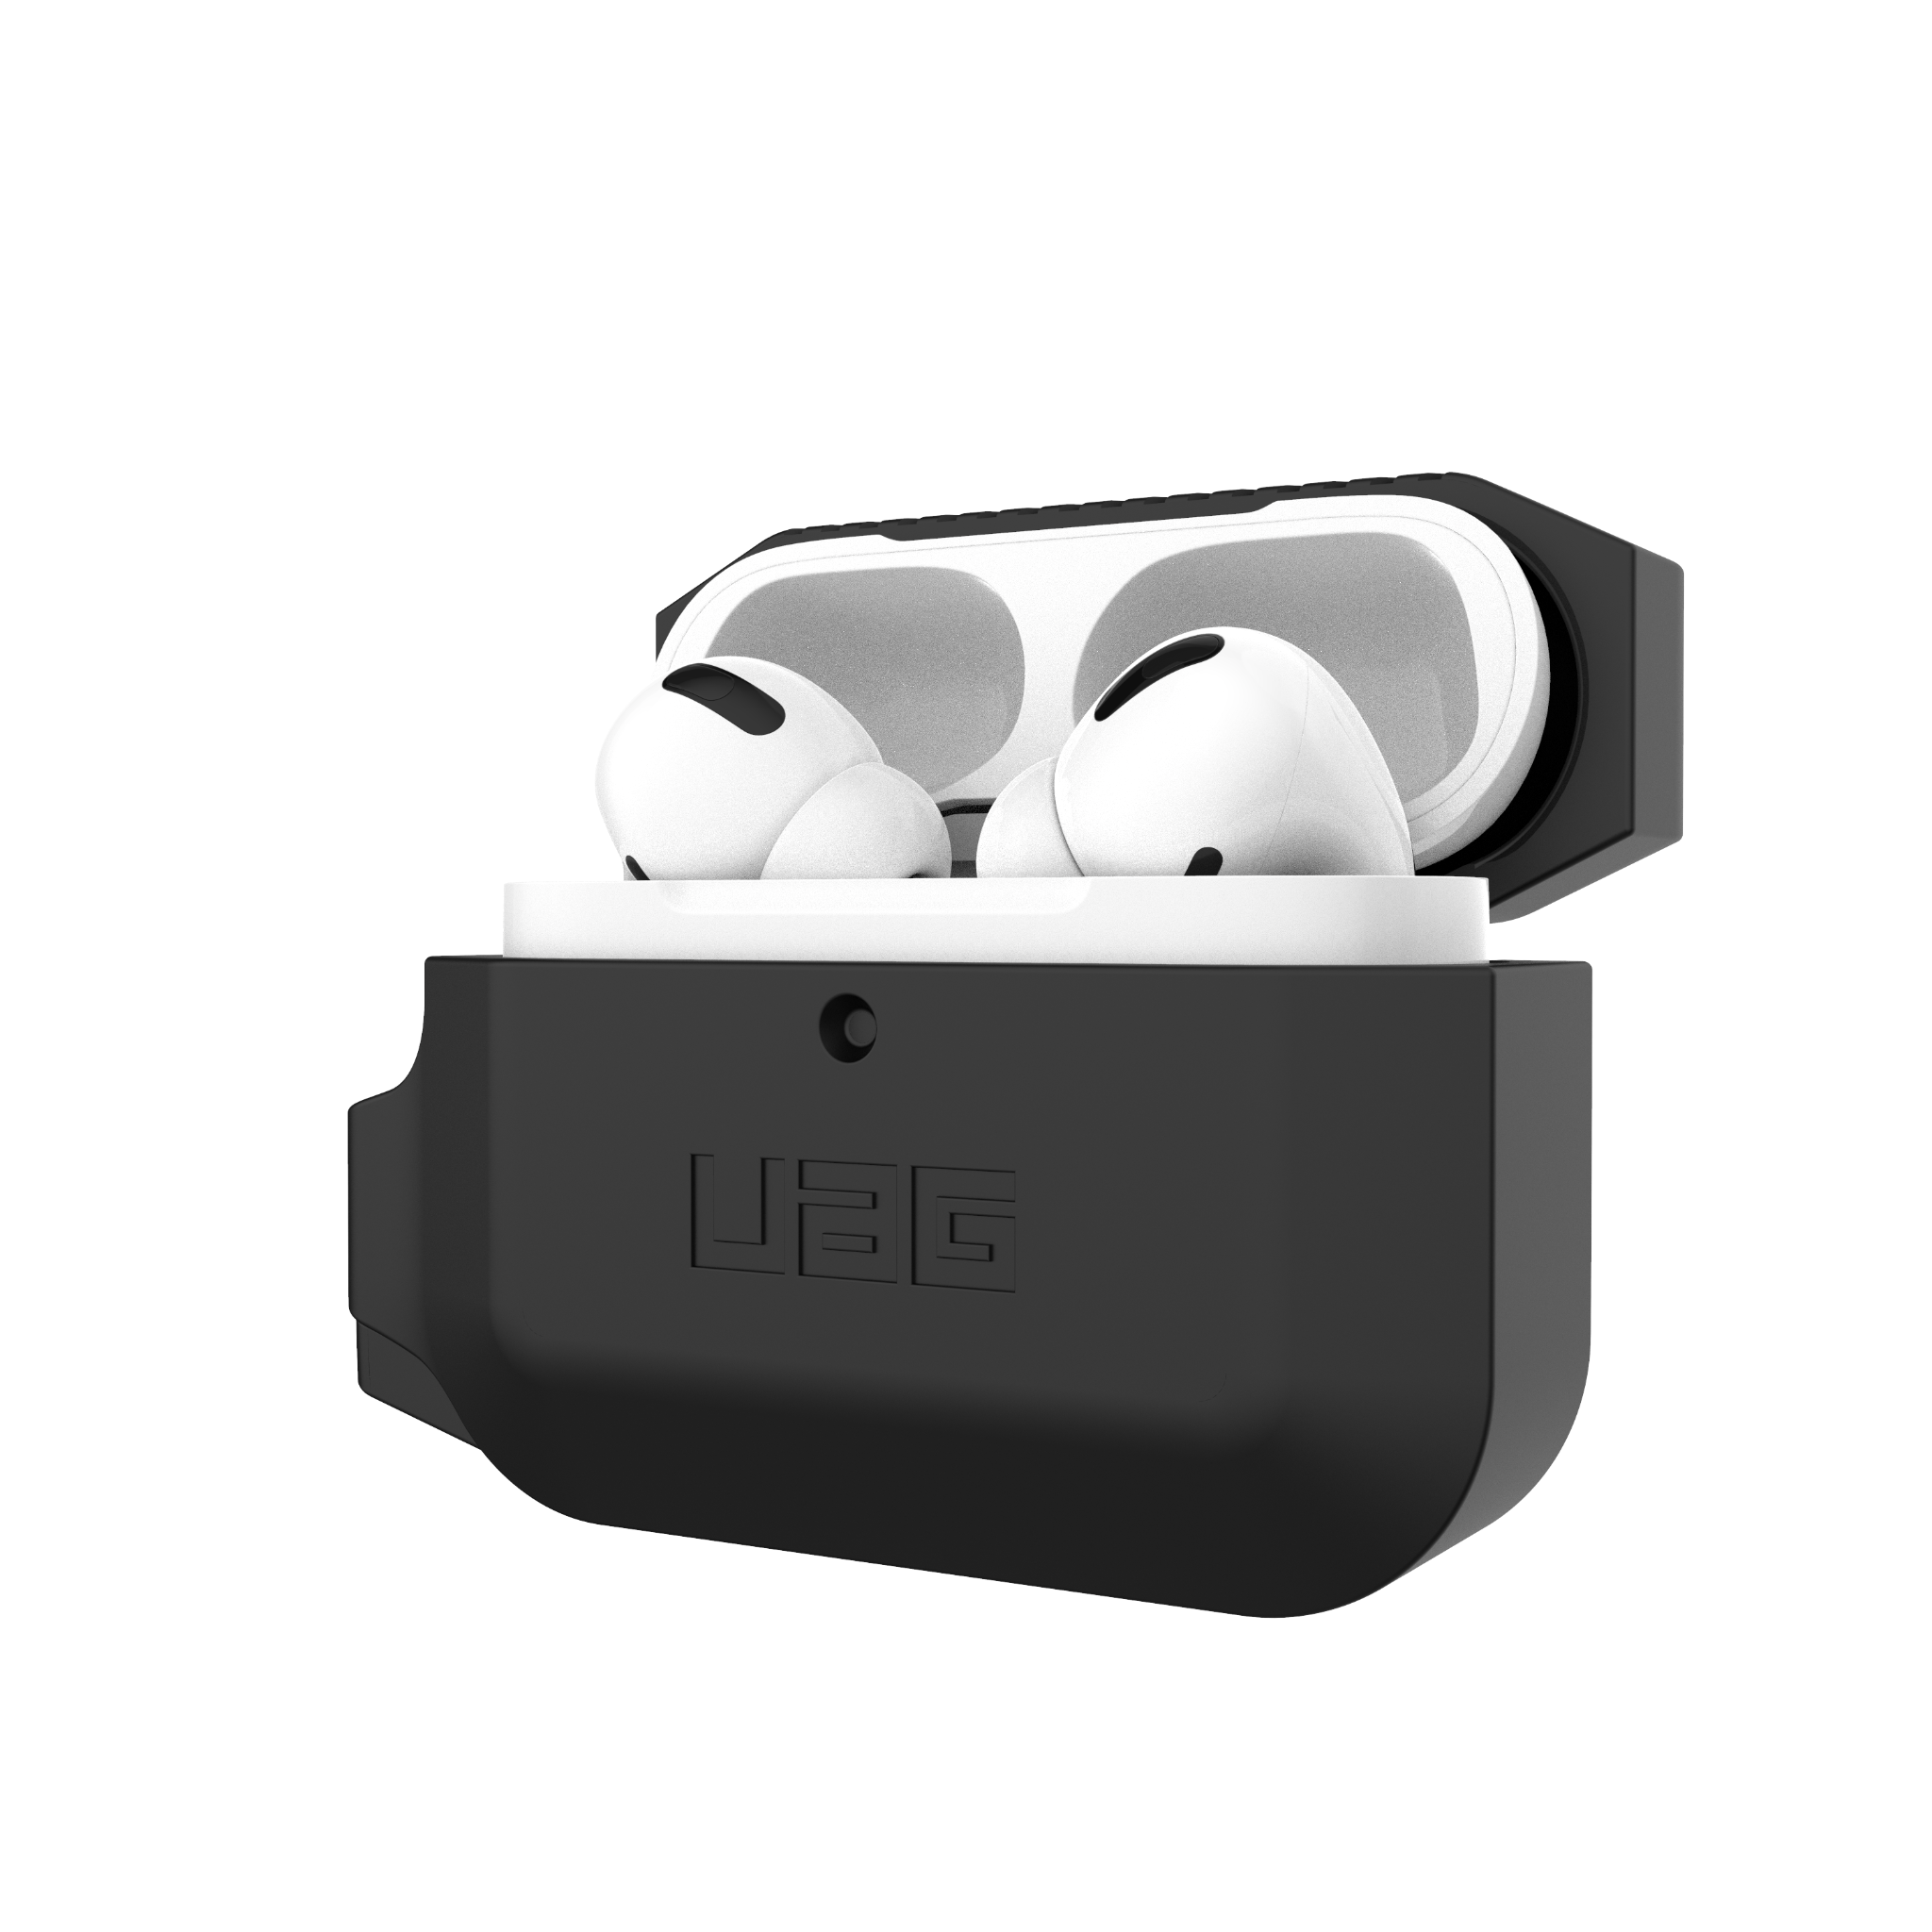 Ốp dẻo UAG Silicon cho AirPods Pro